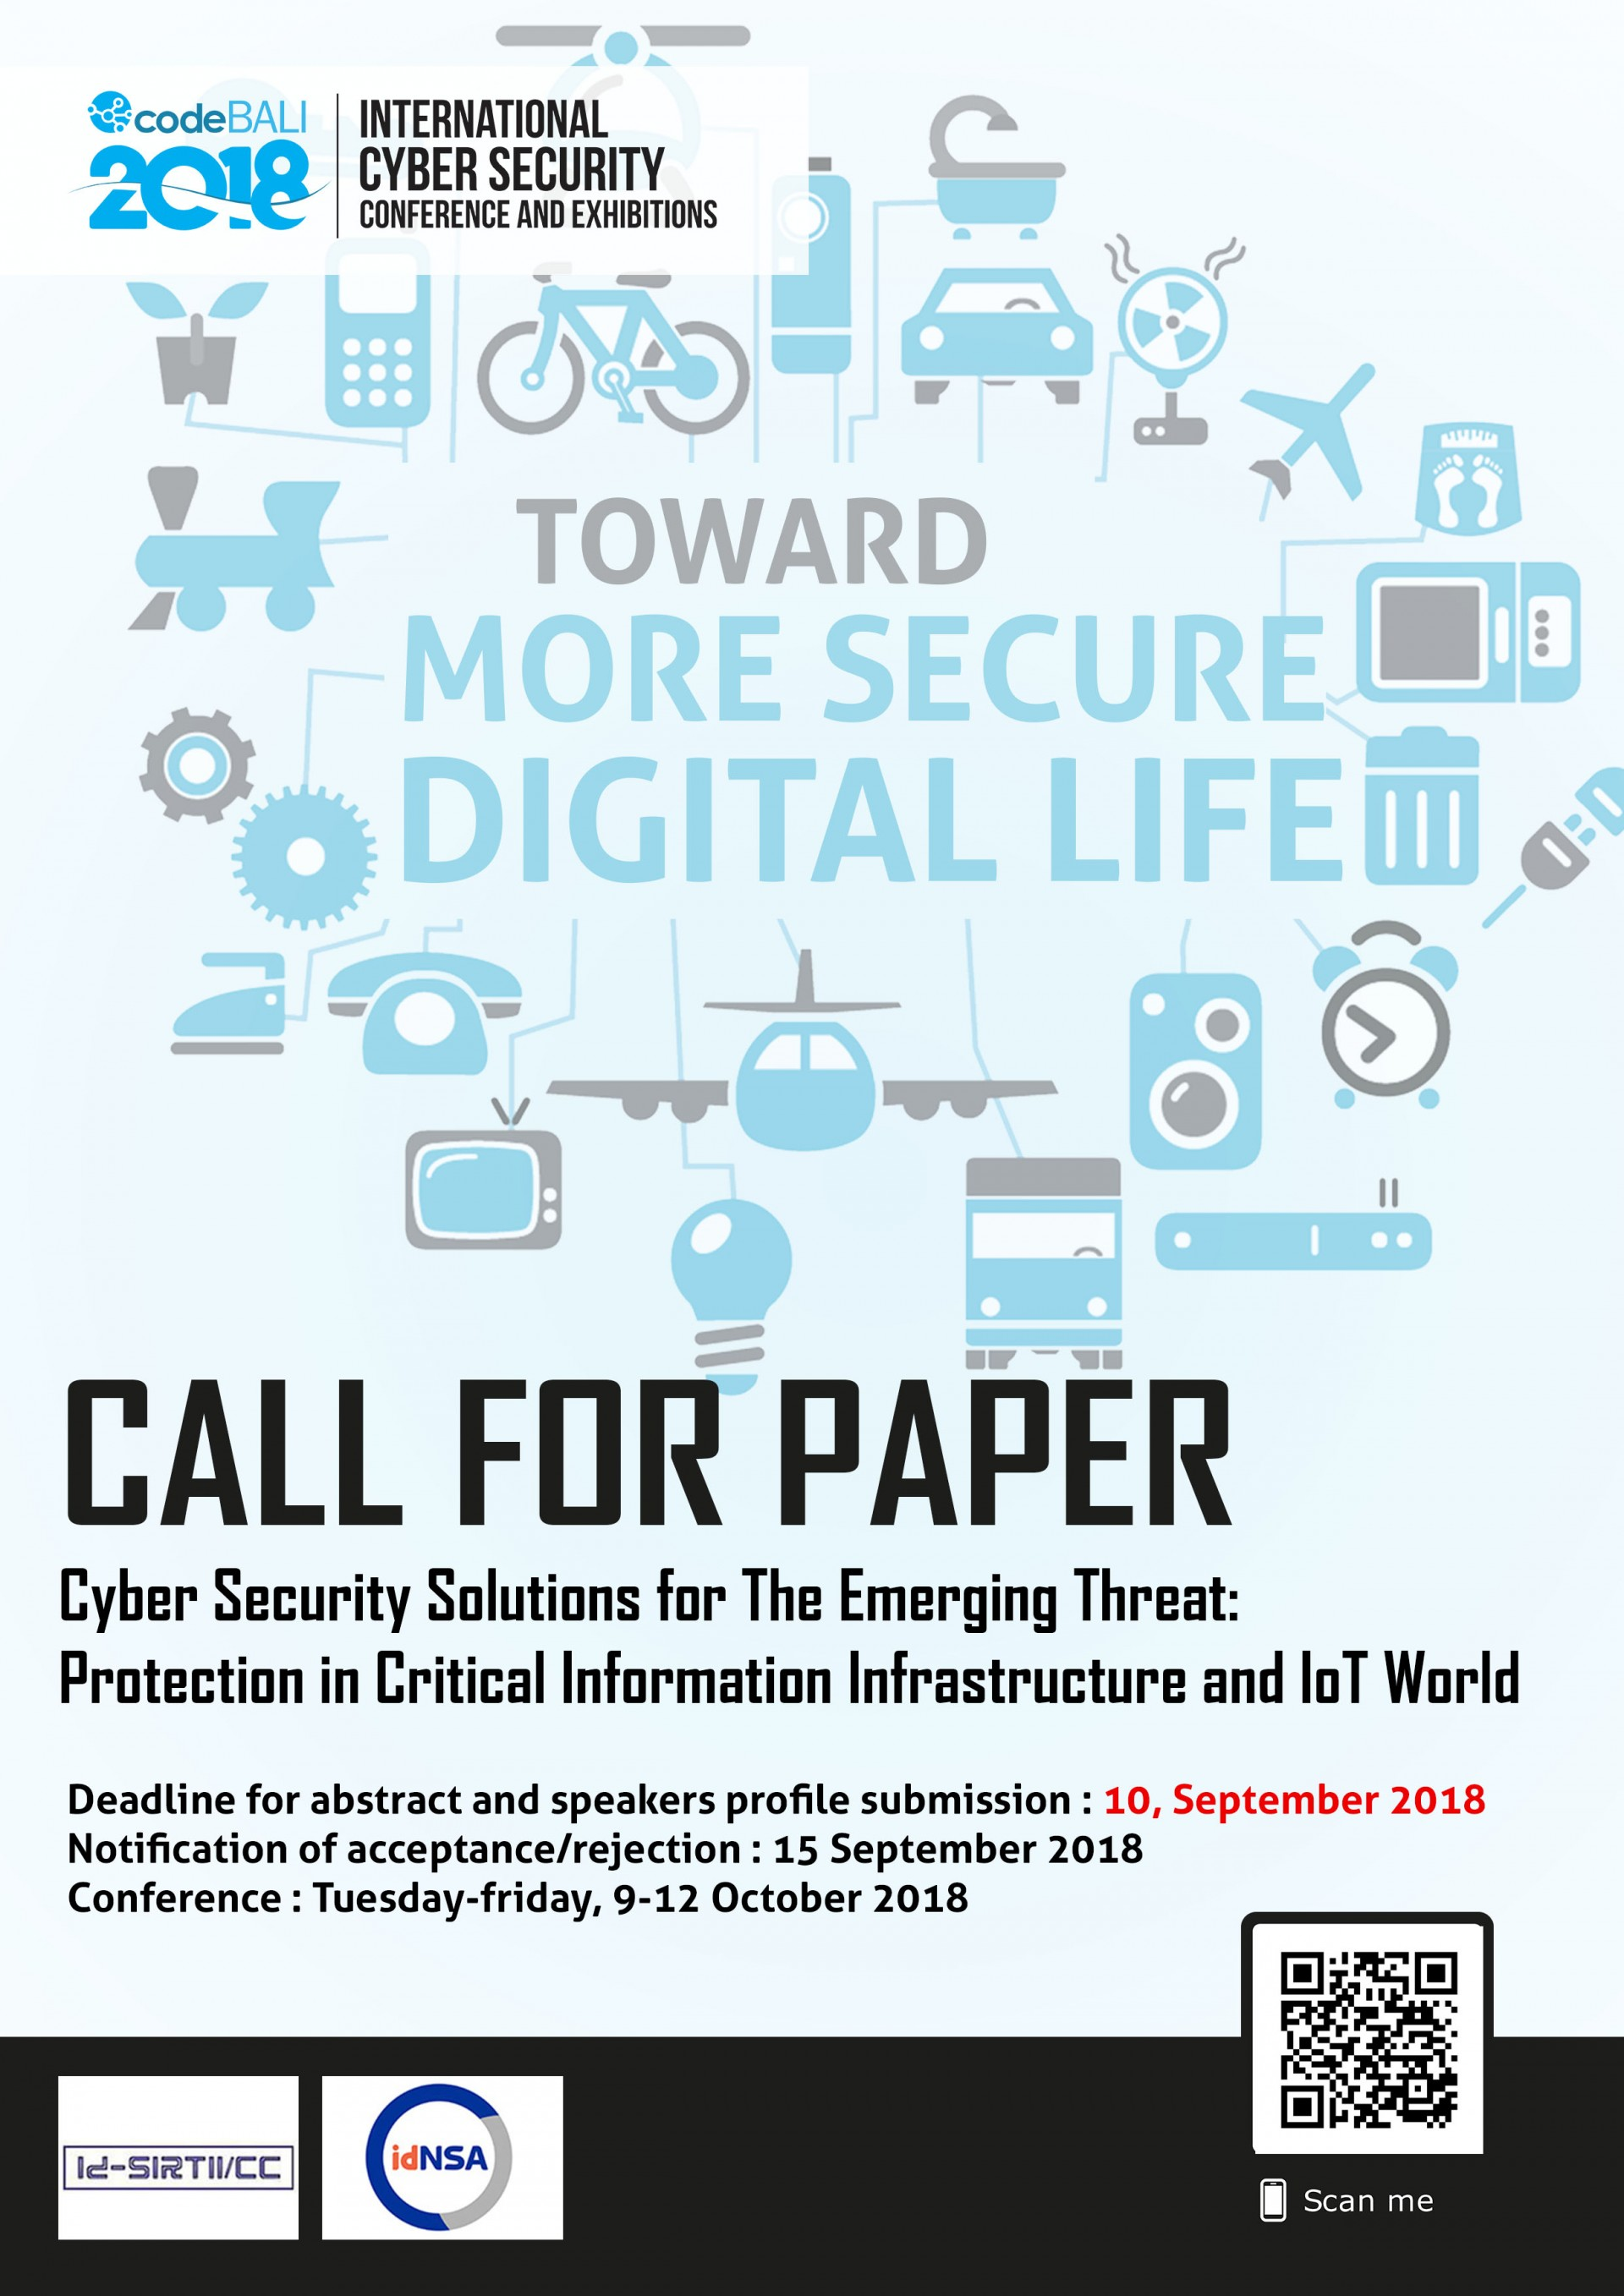 013 Research Paper Cyber Security Papers Wondrous 2018 Pdf 1920